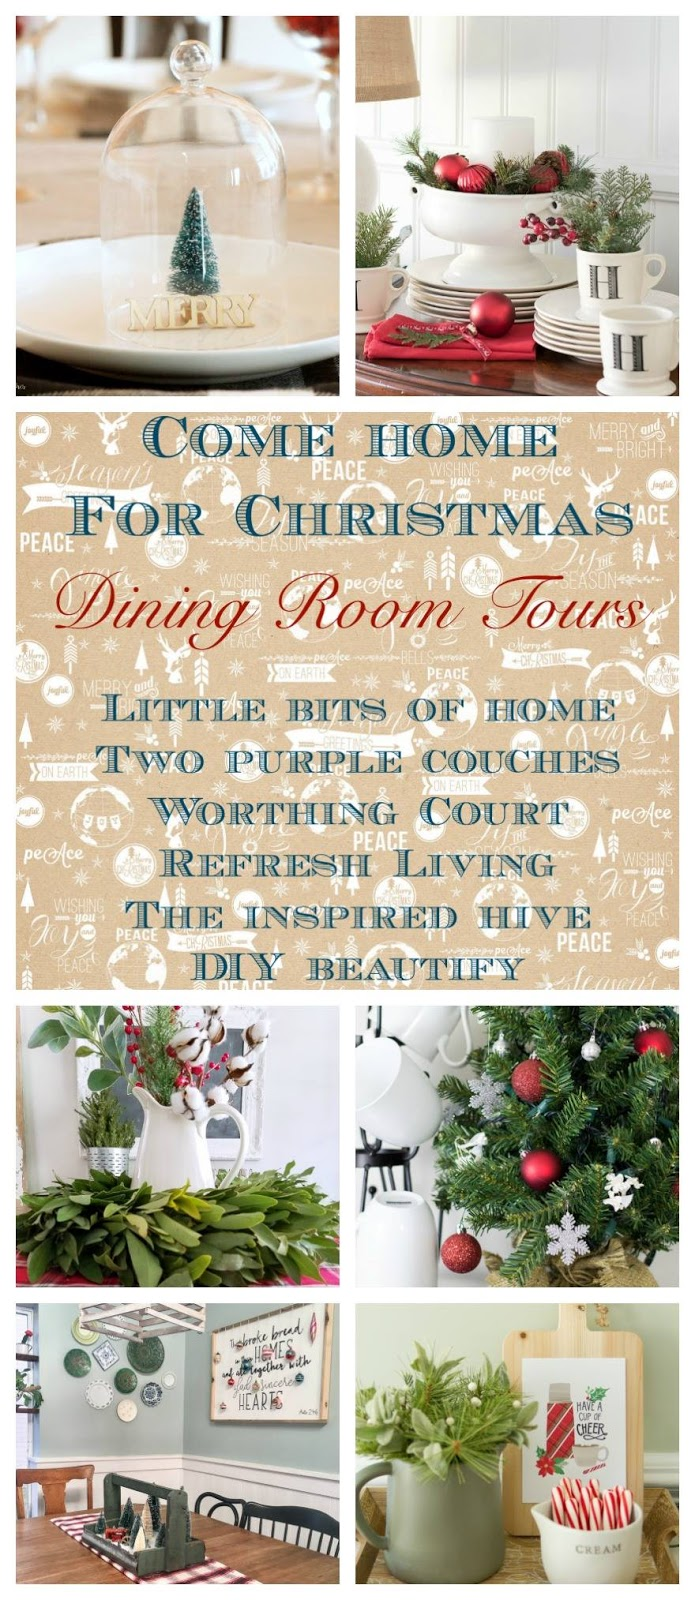 Holiday room tours! 32 bloggers share five different rooms decorated for Christmas.